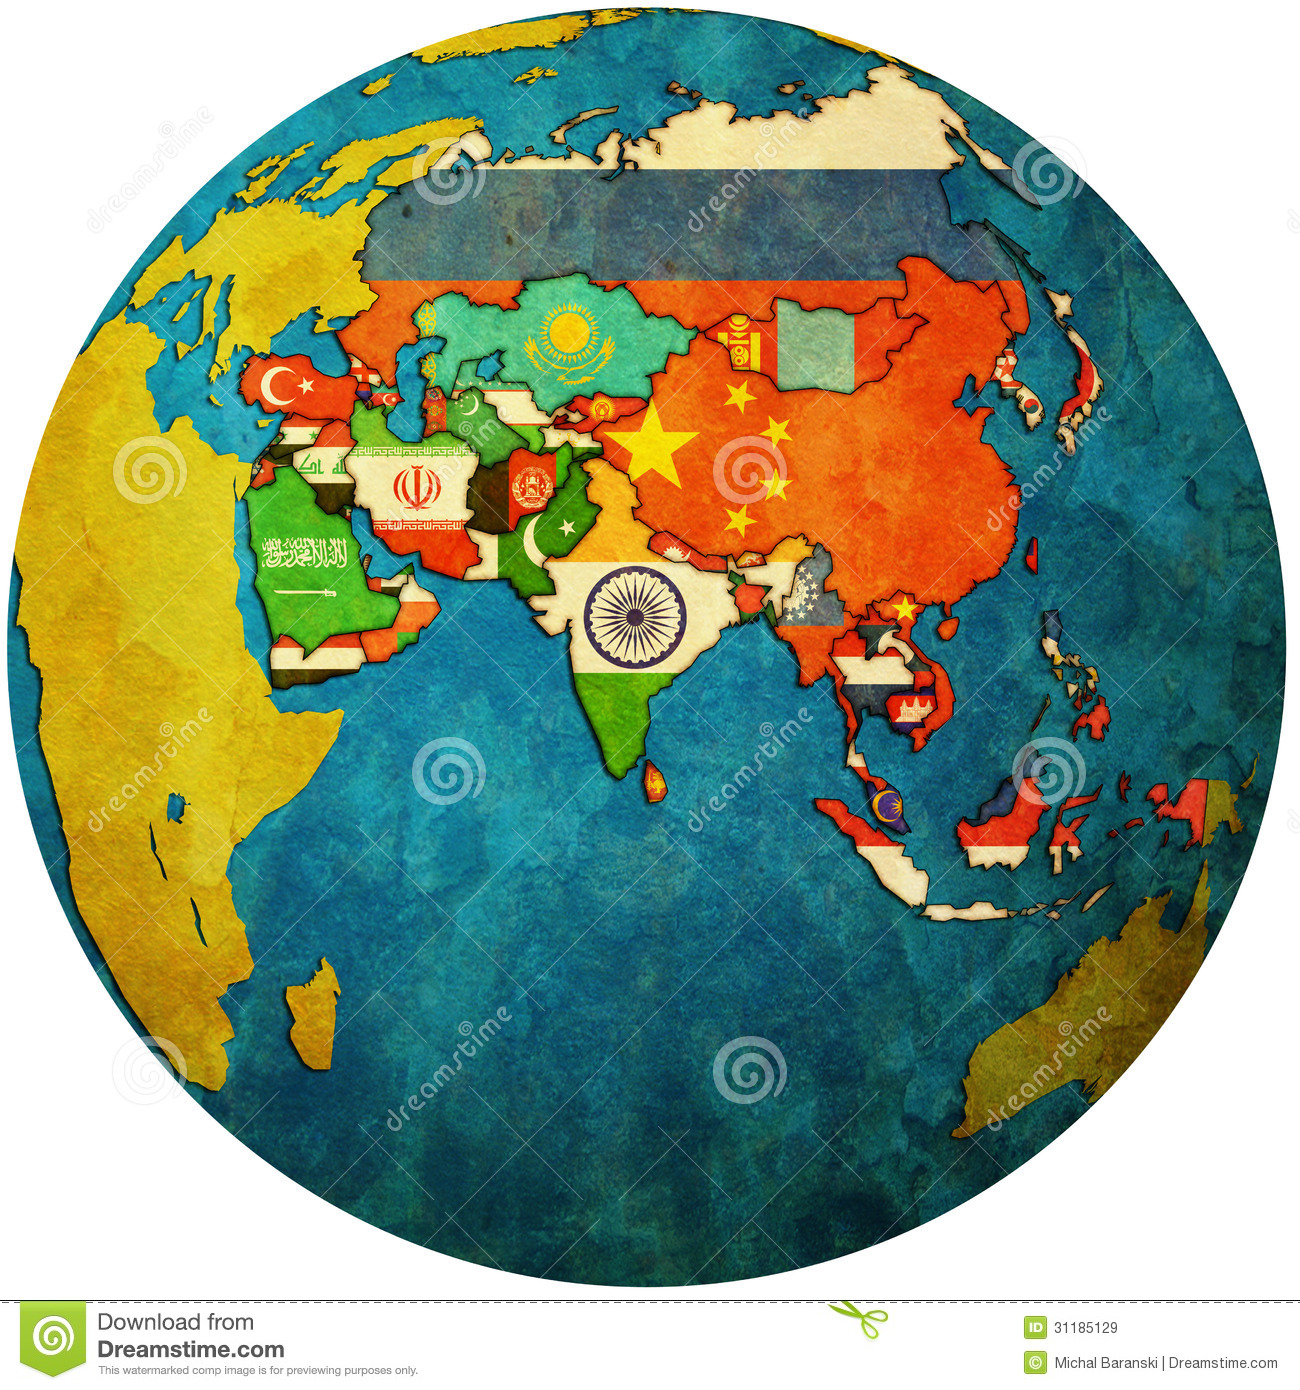 Asia On A Map Of The World.Political Map Of Asia On Globe Map Stock Illustration Illustration